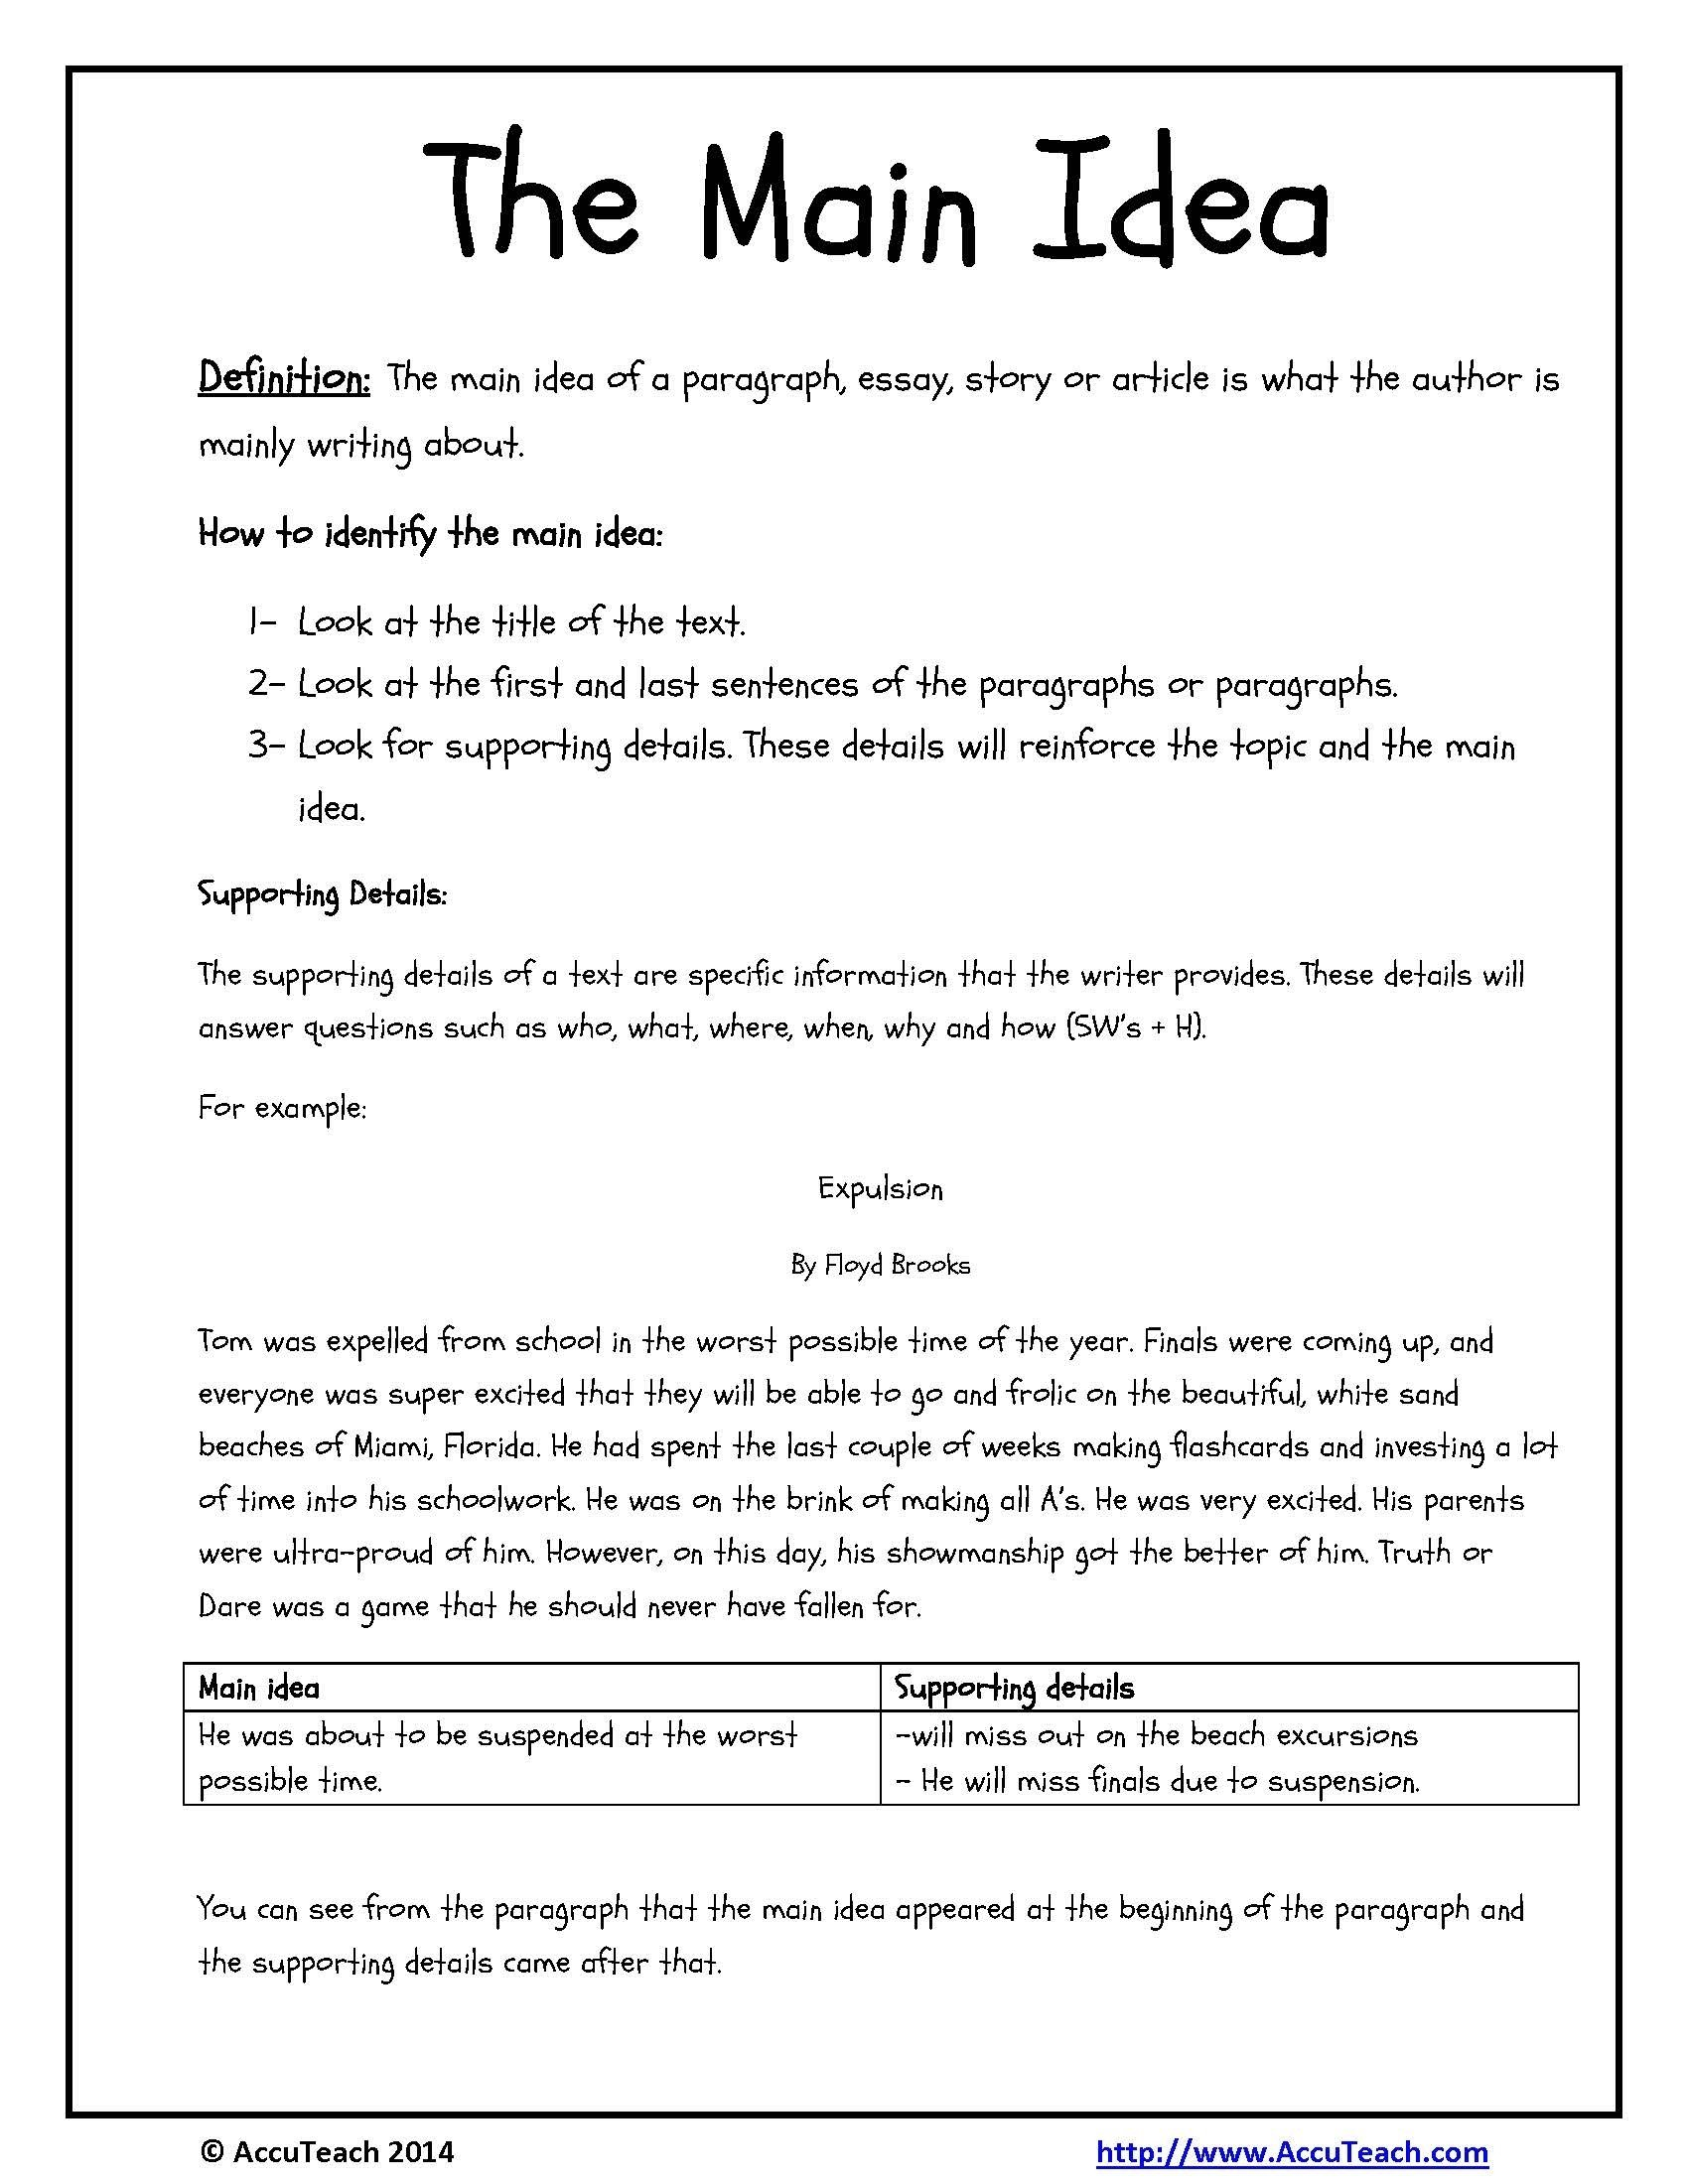 10 Great 4Th Grade Main Idea Passages main idea worksheets 3rd grade worksheets for all download and